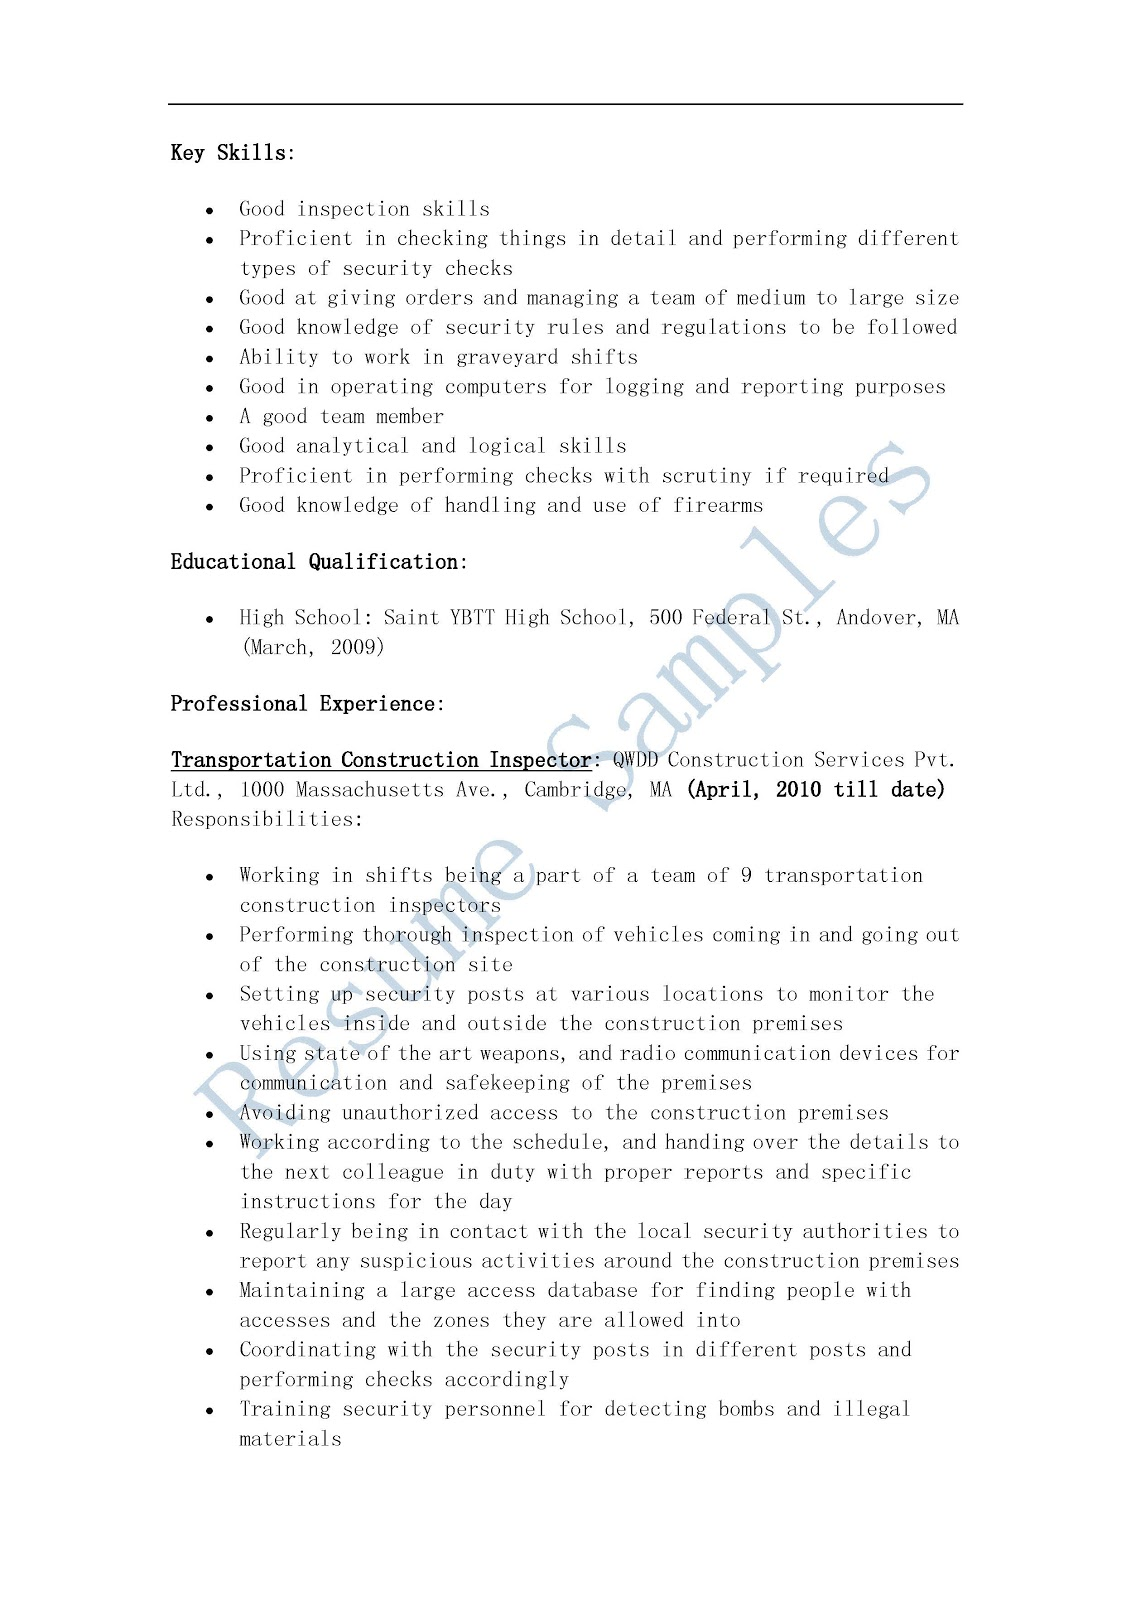 Sample Pursuing Remedies Against Surety  Transportationconstructioninspectorresume 2 Surety Bond Claim Letter  Samplehtml Elevator Inspector Cover Letter